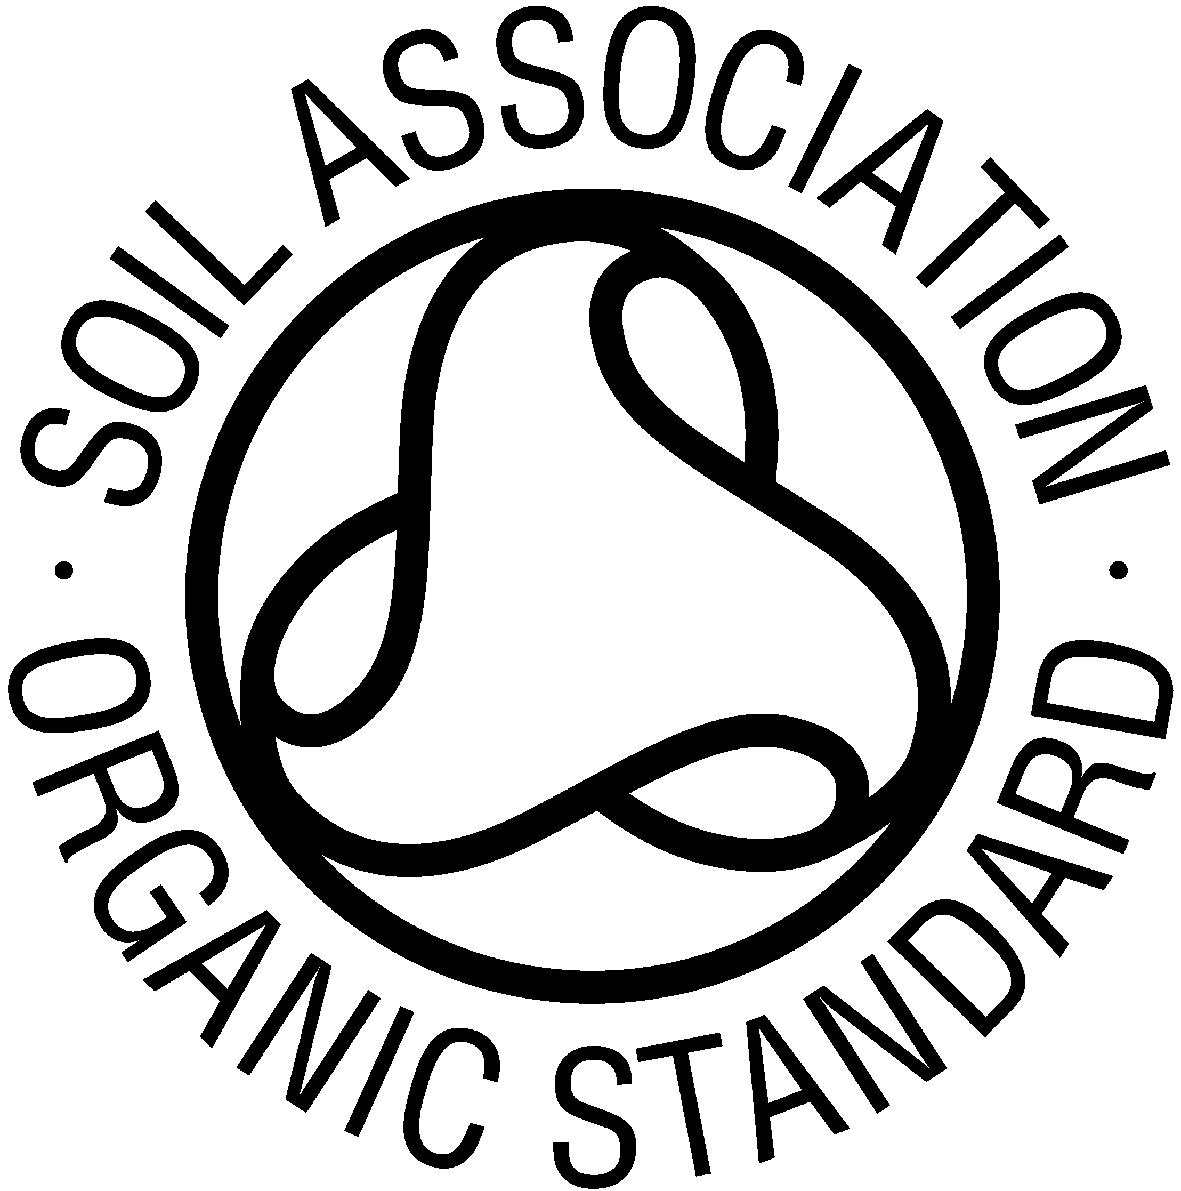 ssja-29384-Soil_Association_Logo